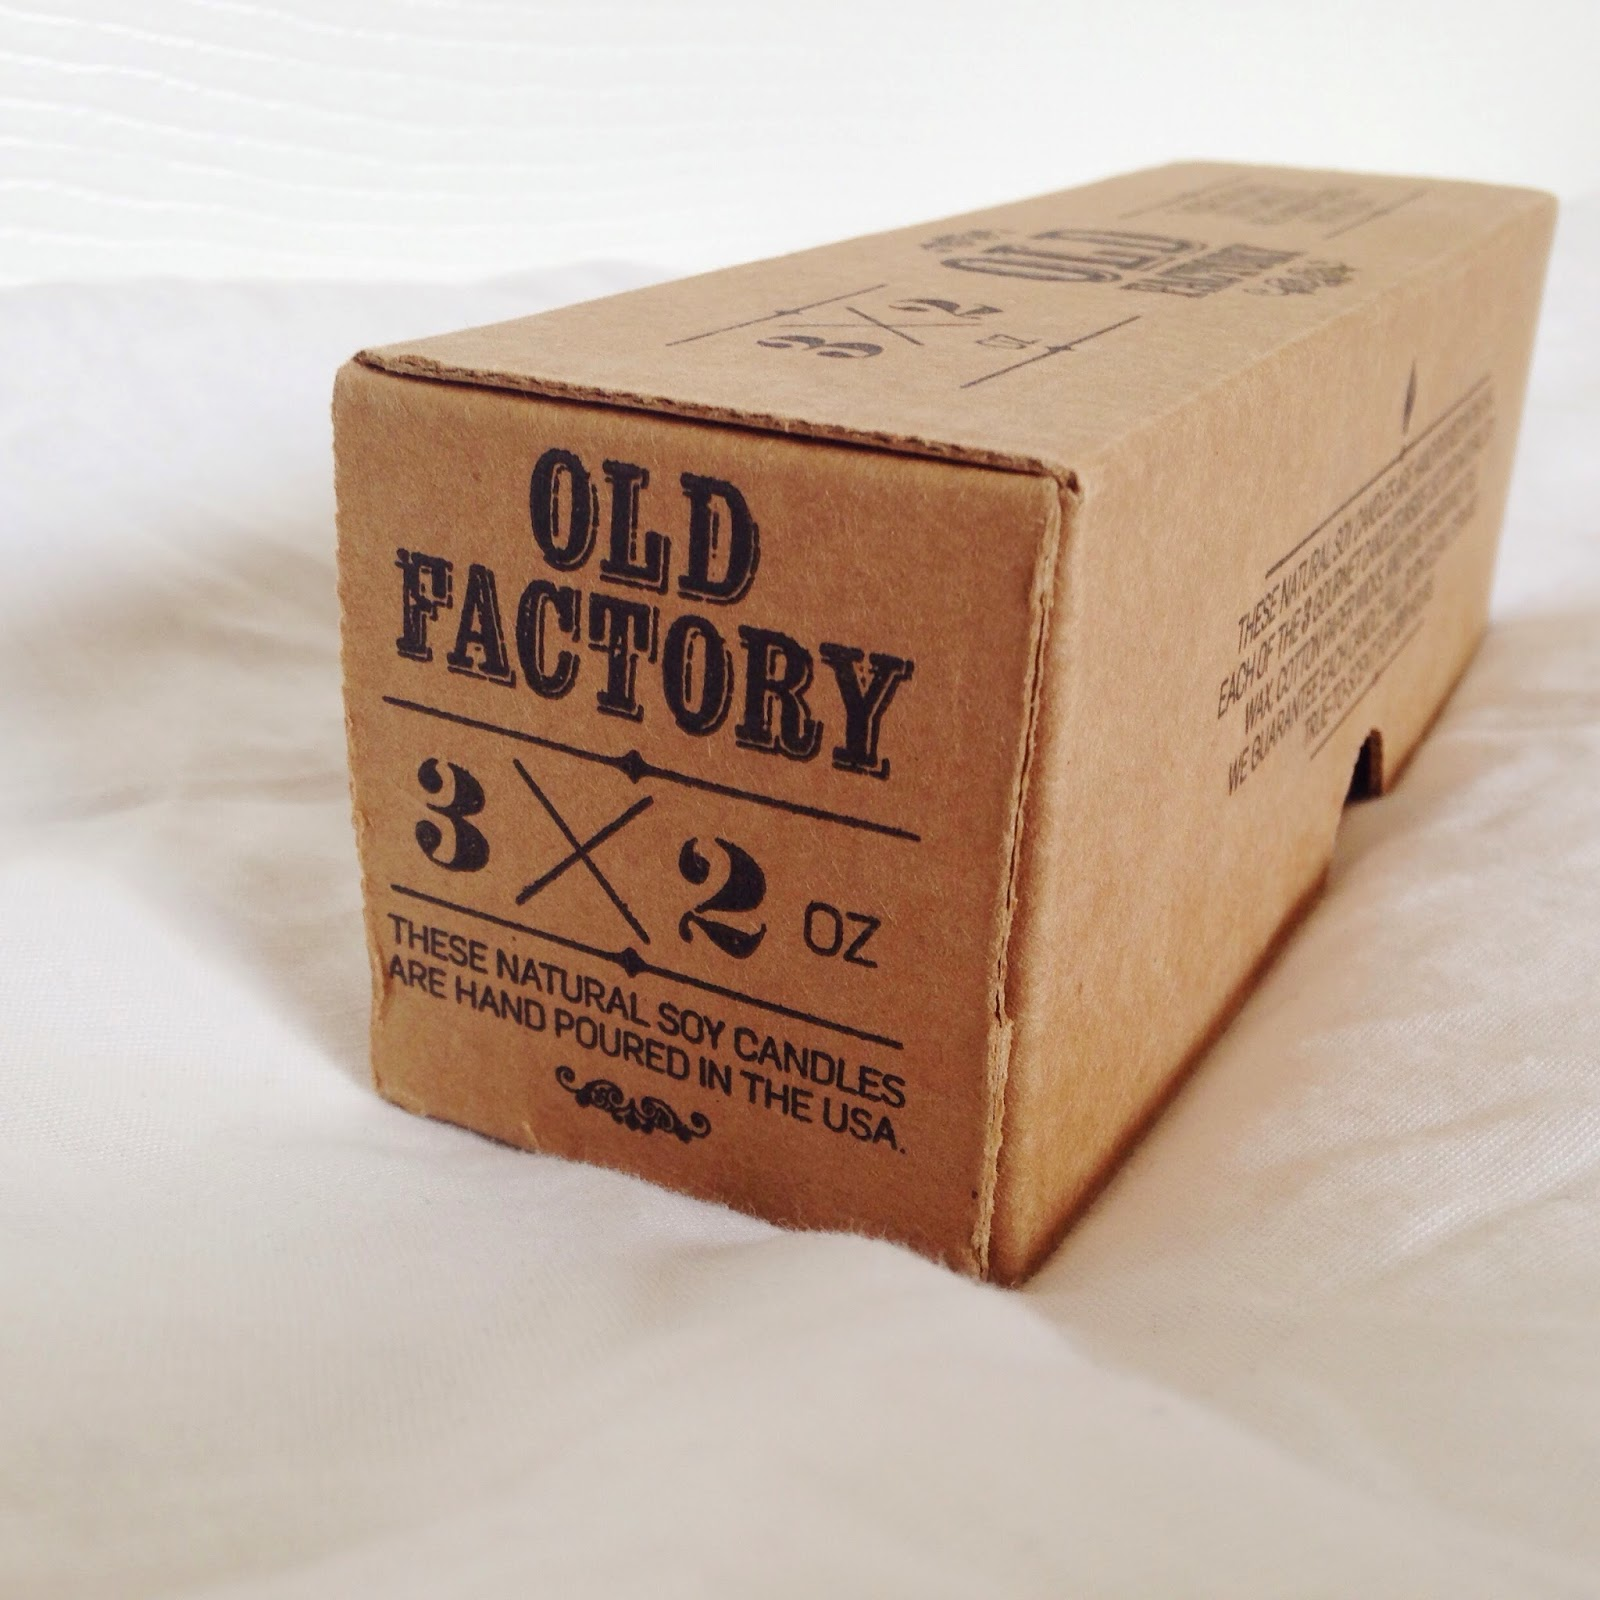 Old Factory Candle Review: Coffee Shop scented candles in their adorable packaging